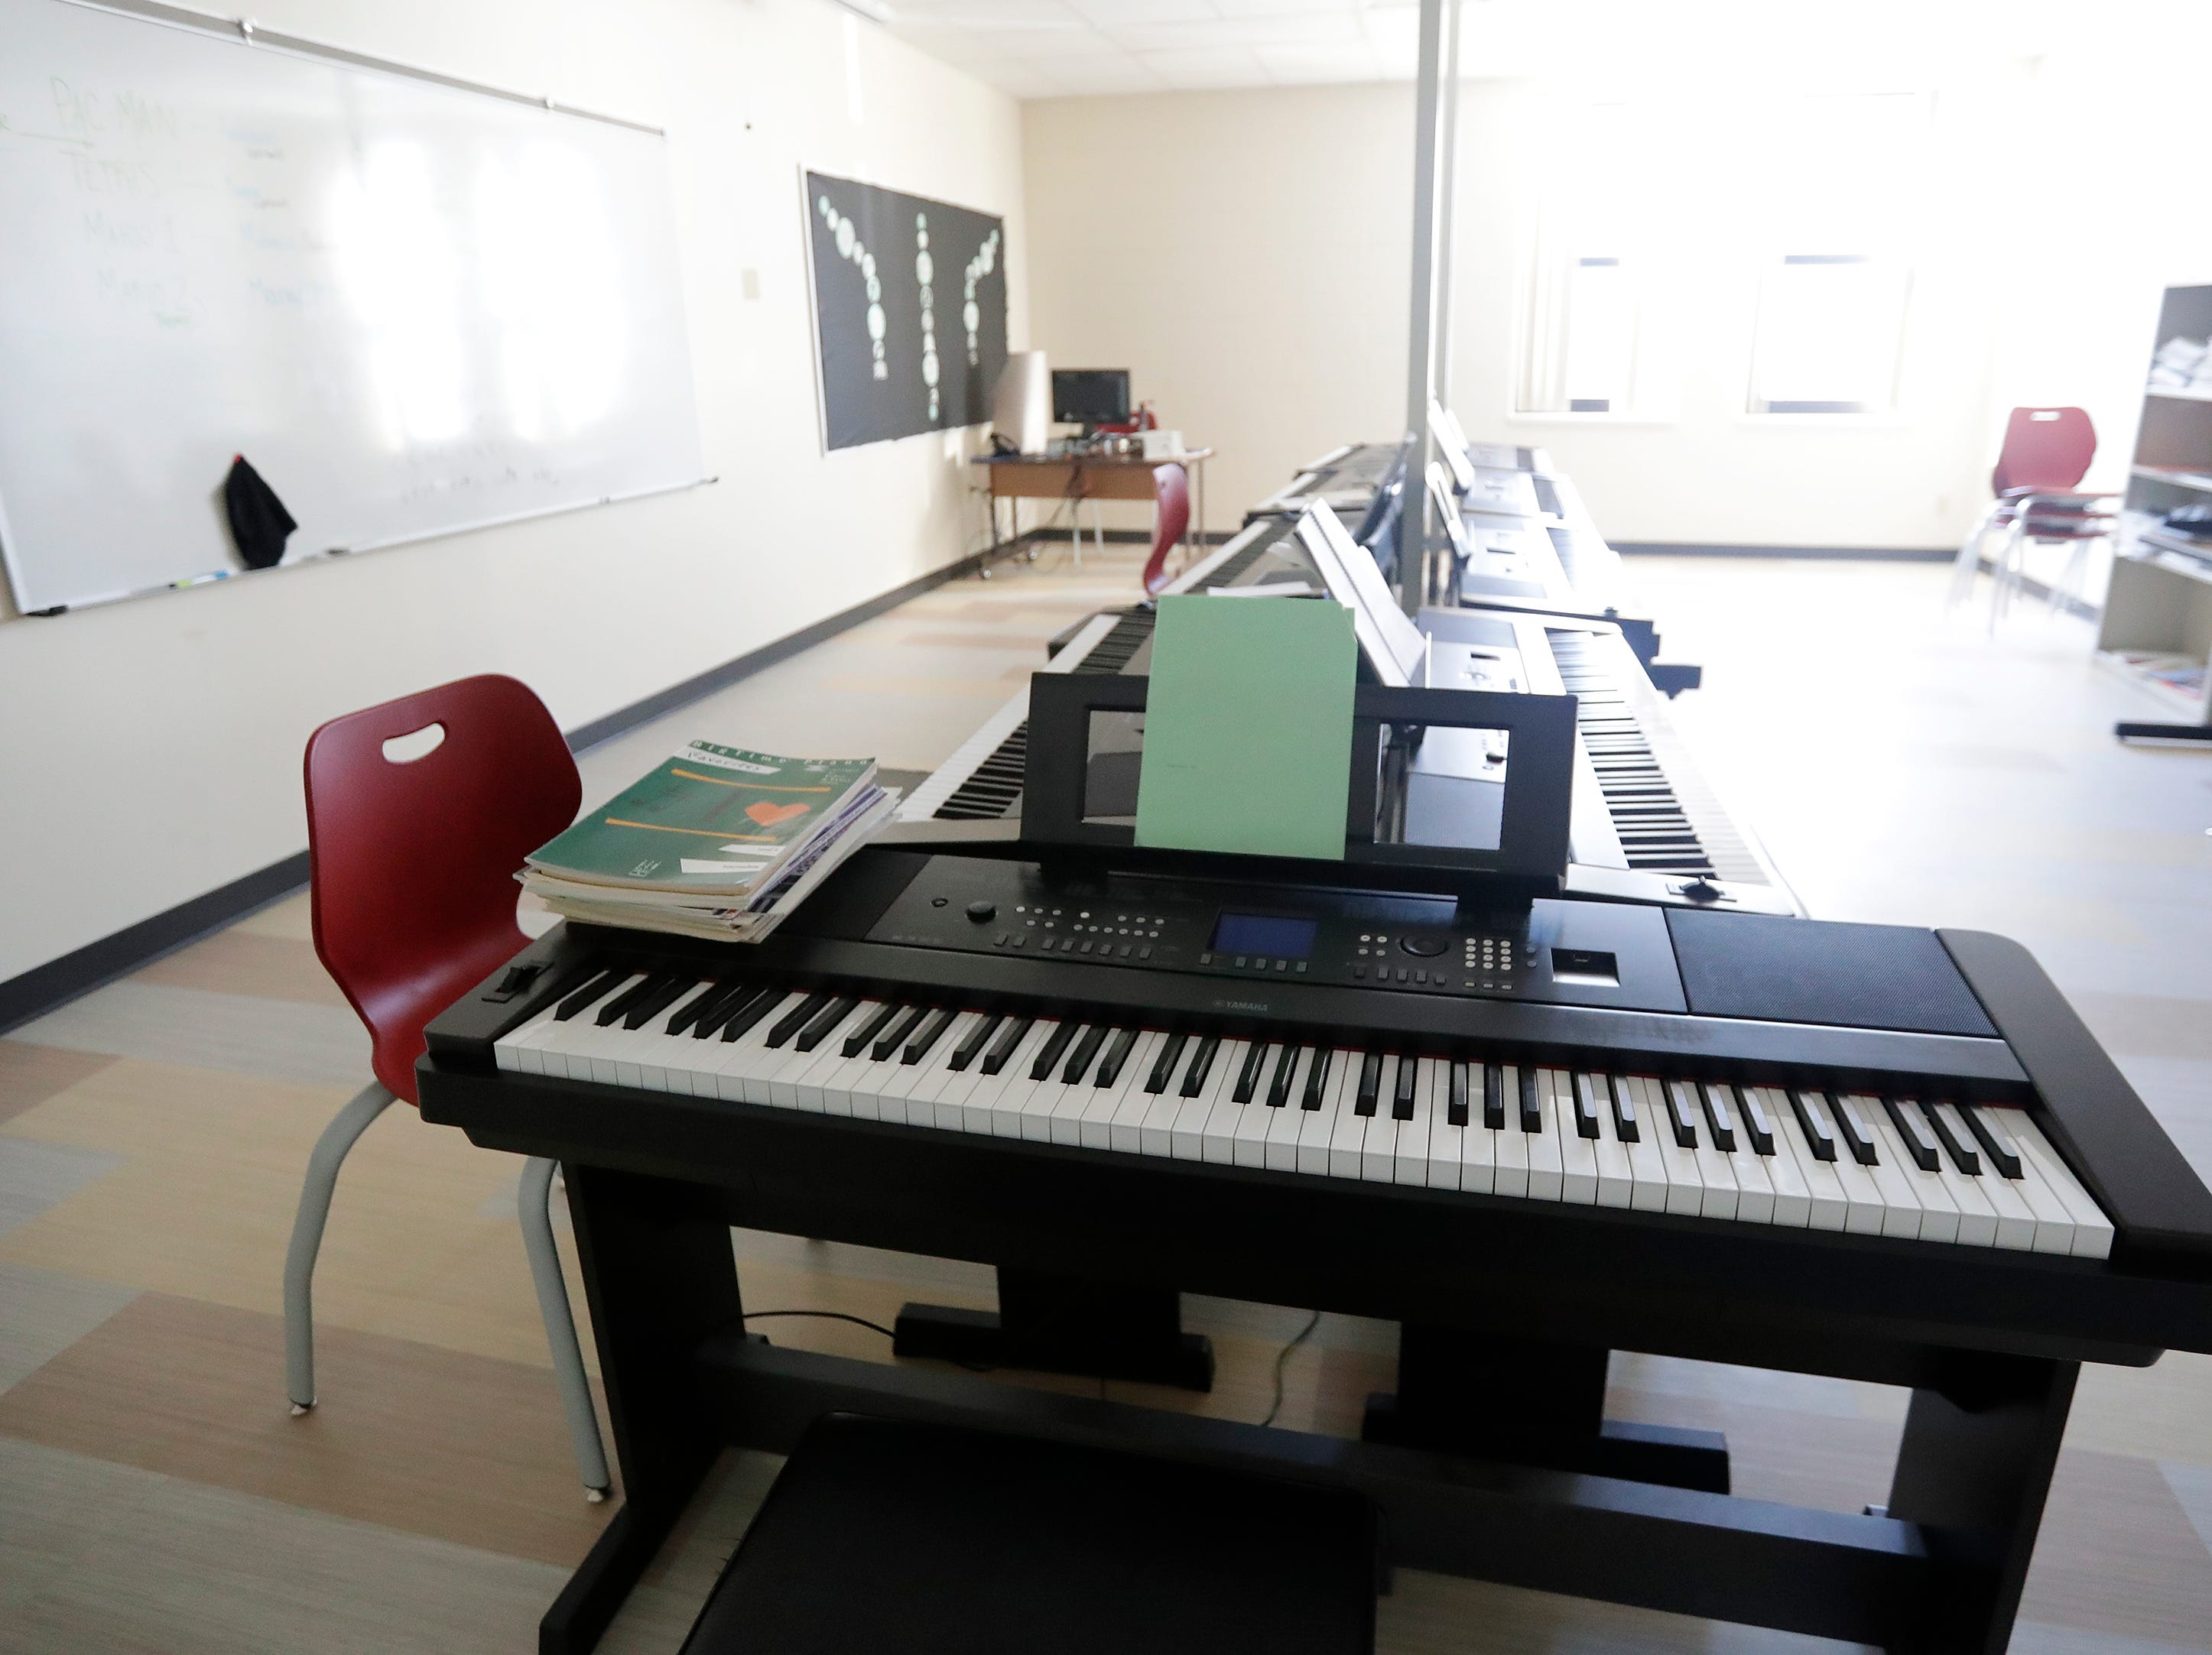 The new piano lab at Washington Middle School is shown on Wednesday, February 13, 2019 in Green Bay, Wis.